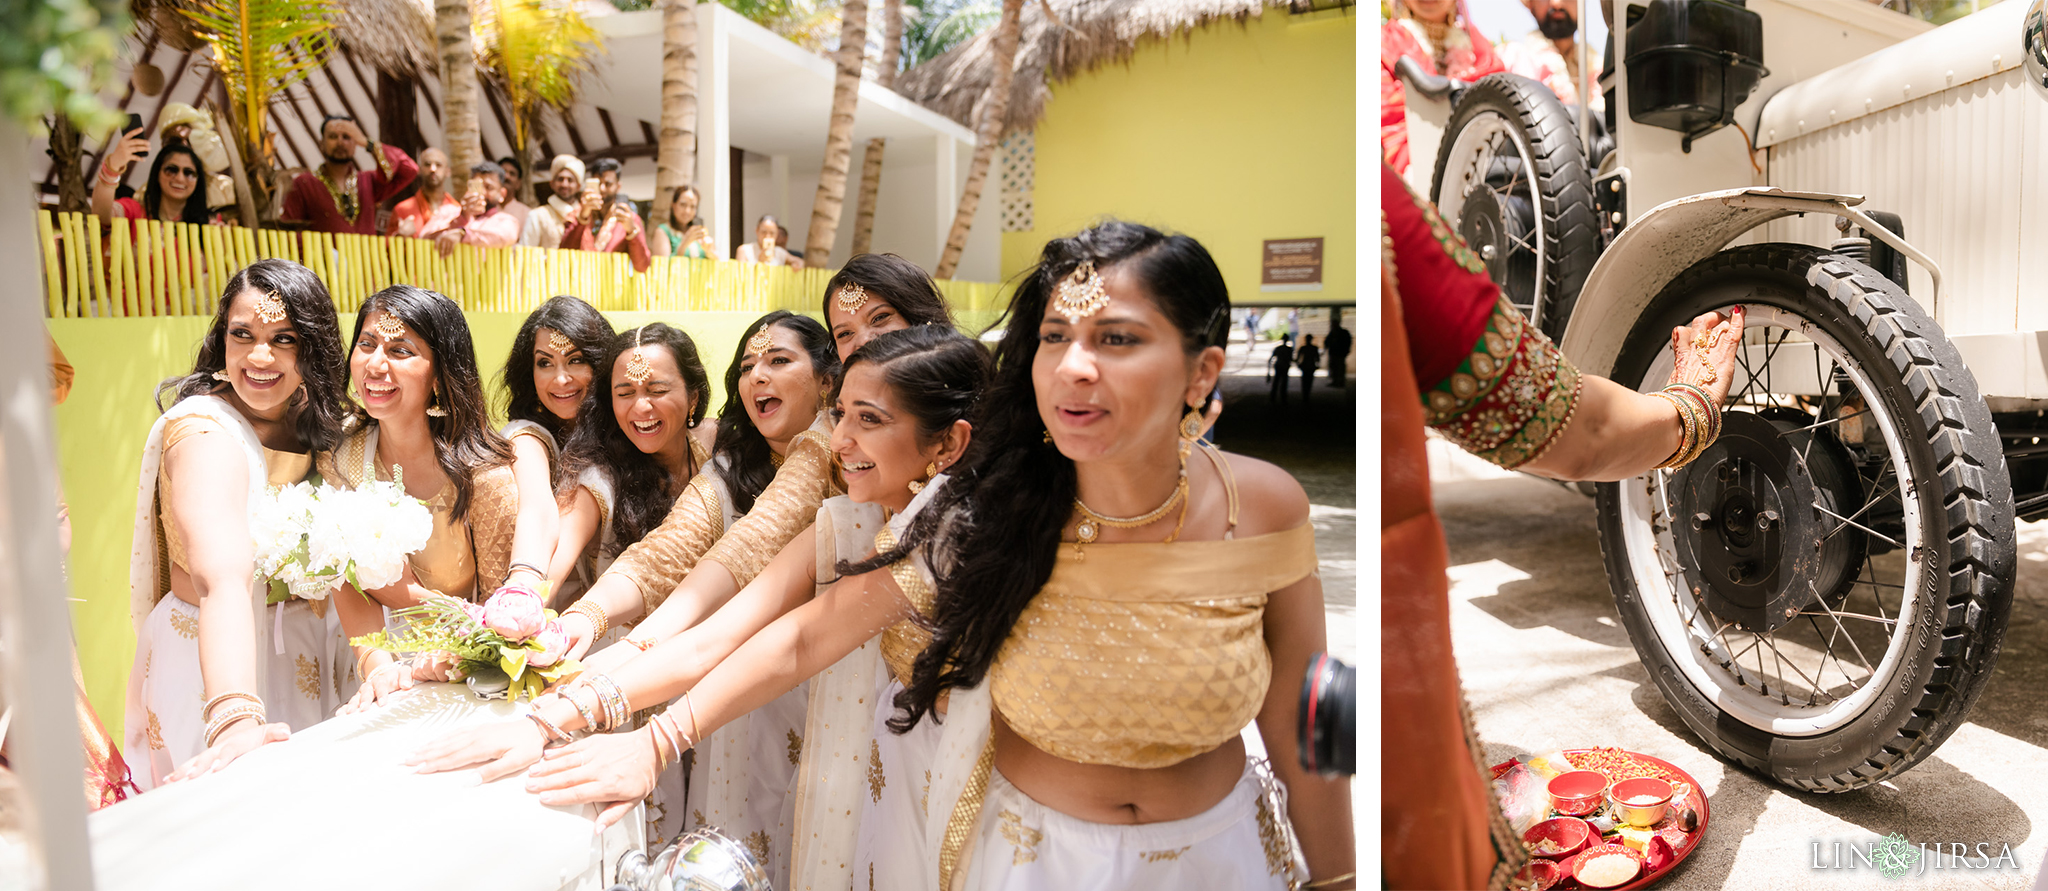 39 Generations El Dorado Royale Cancun Mexico Indian Wedding Photography